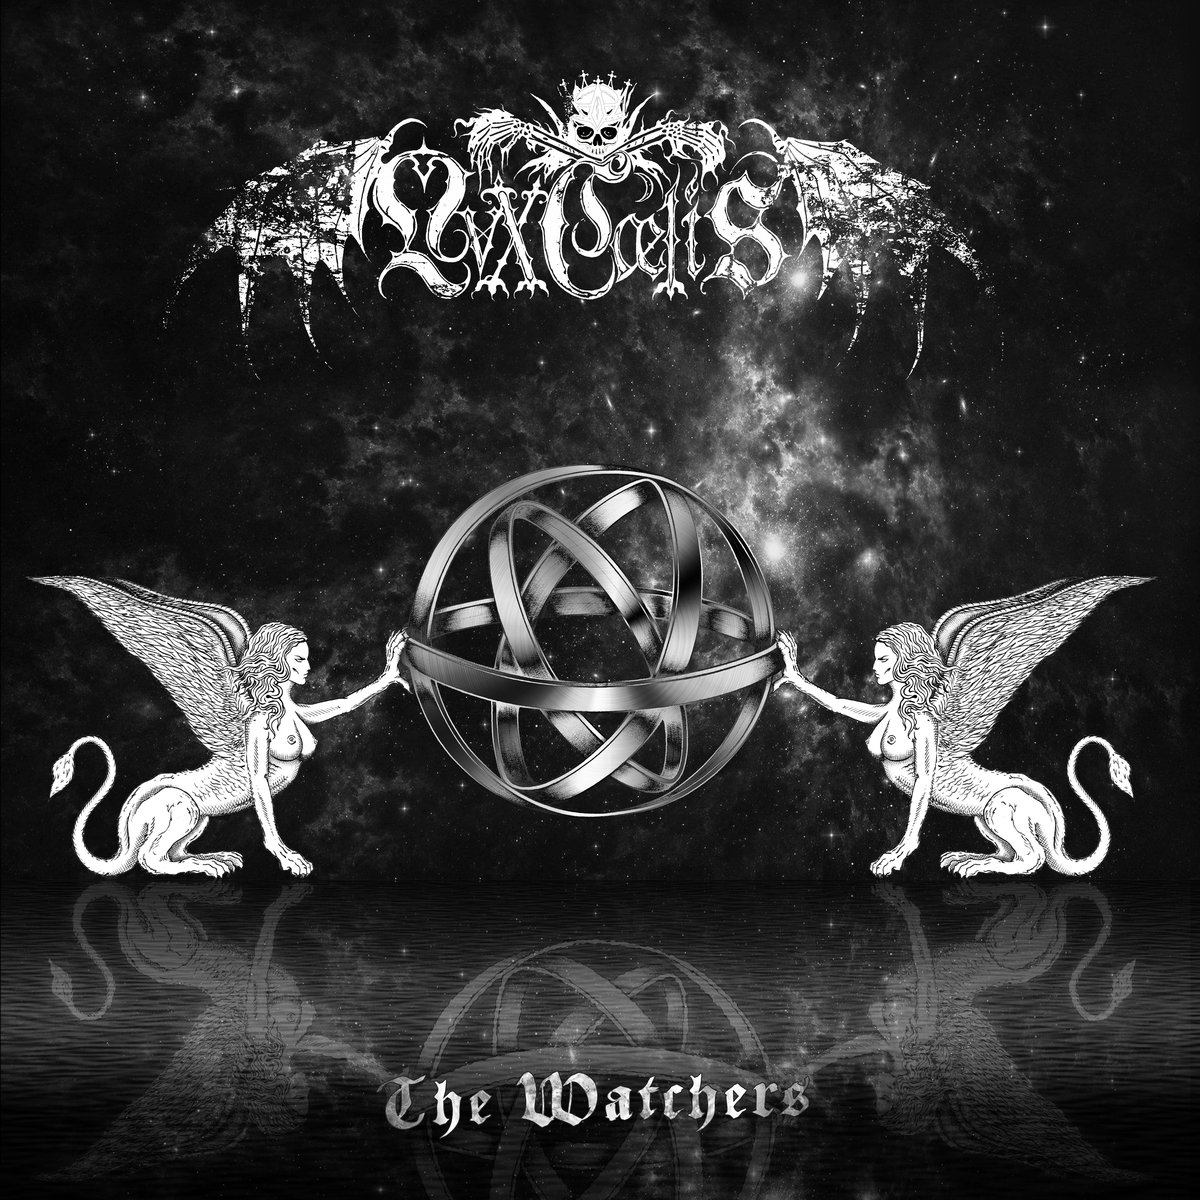 LVXCAELIS - The Watchers